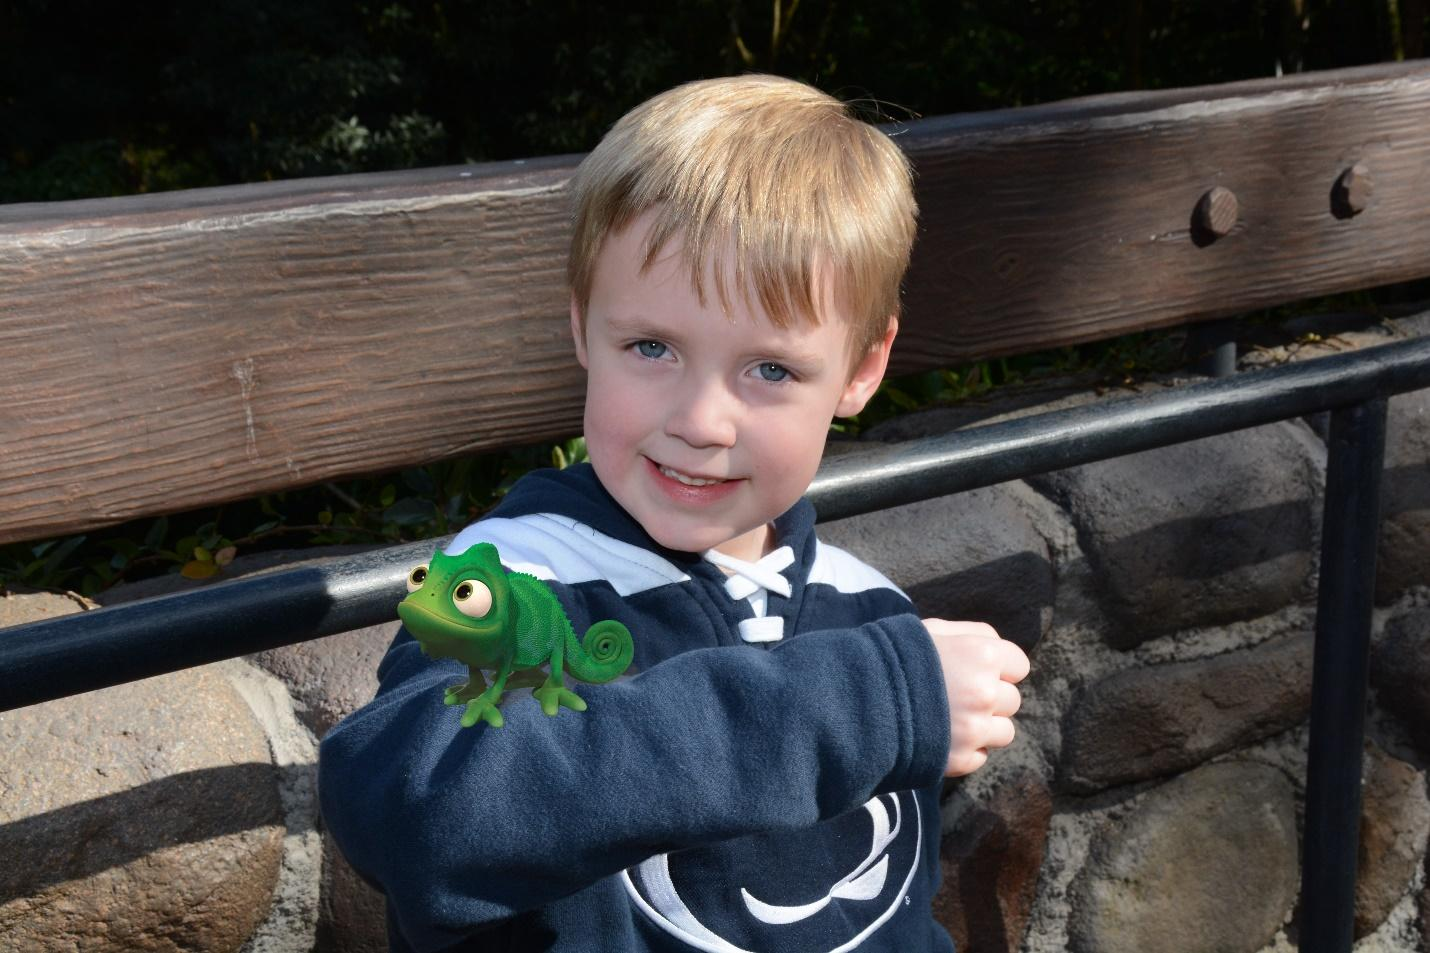 Disney's Memory Maker creates a fun interaction between Tangled lizard and small boy.